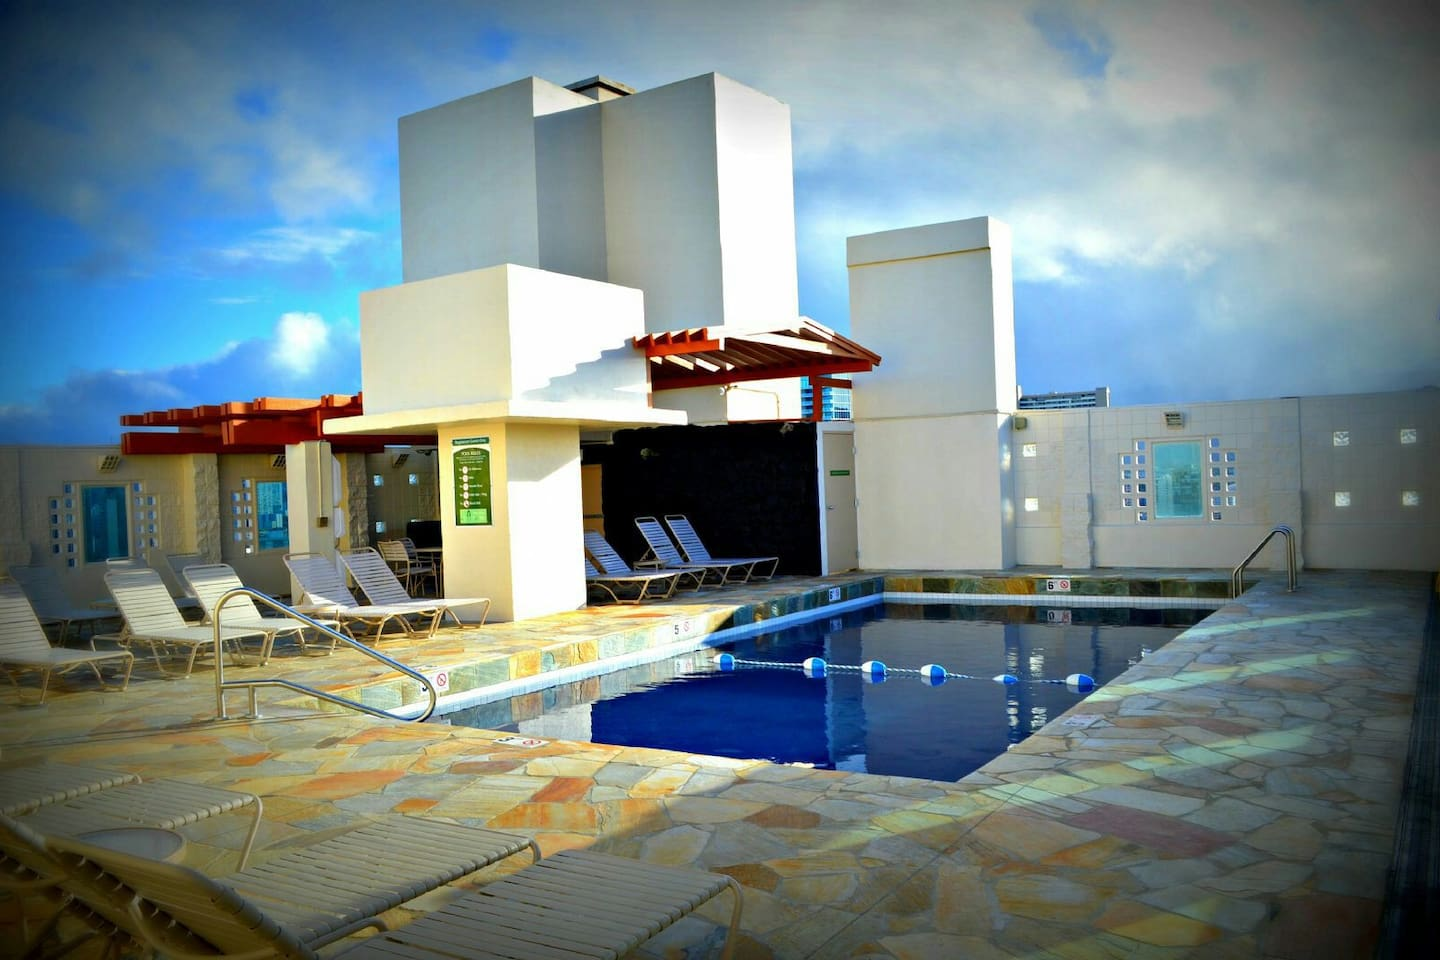 Rooftop pool for views and sunbathing